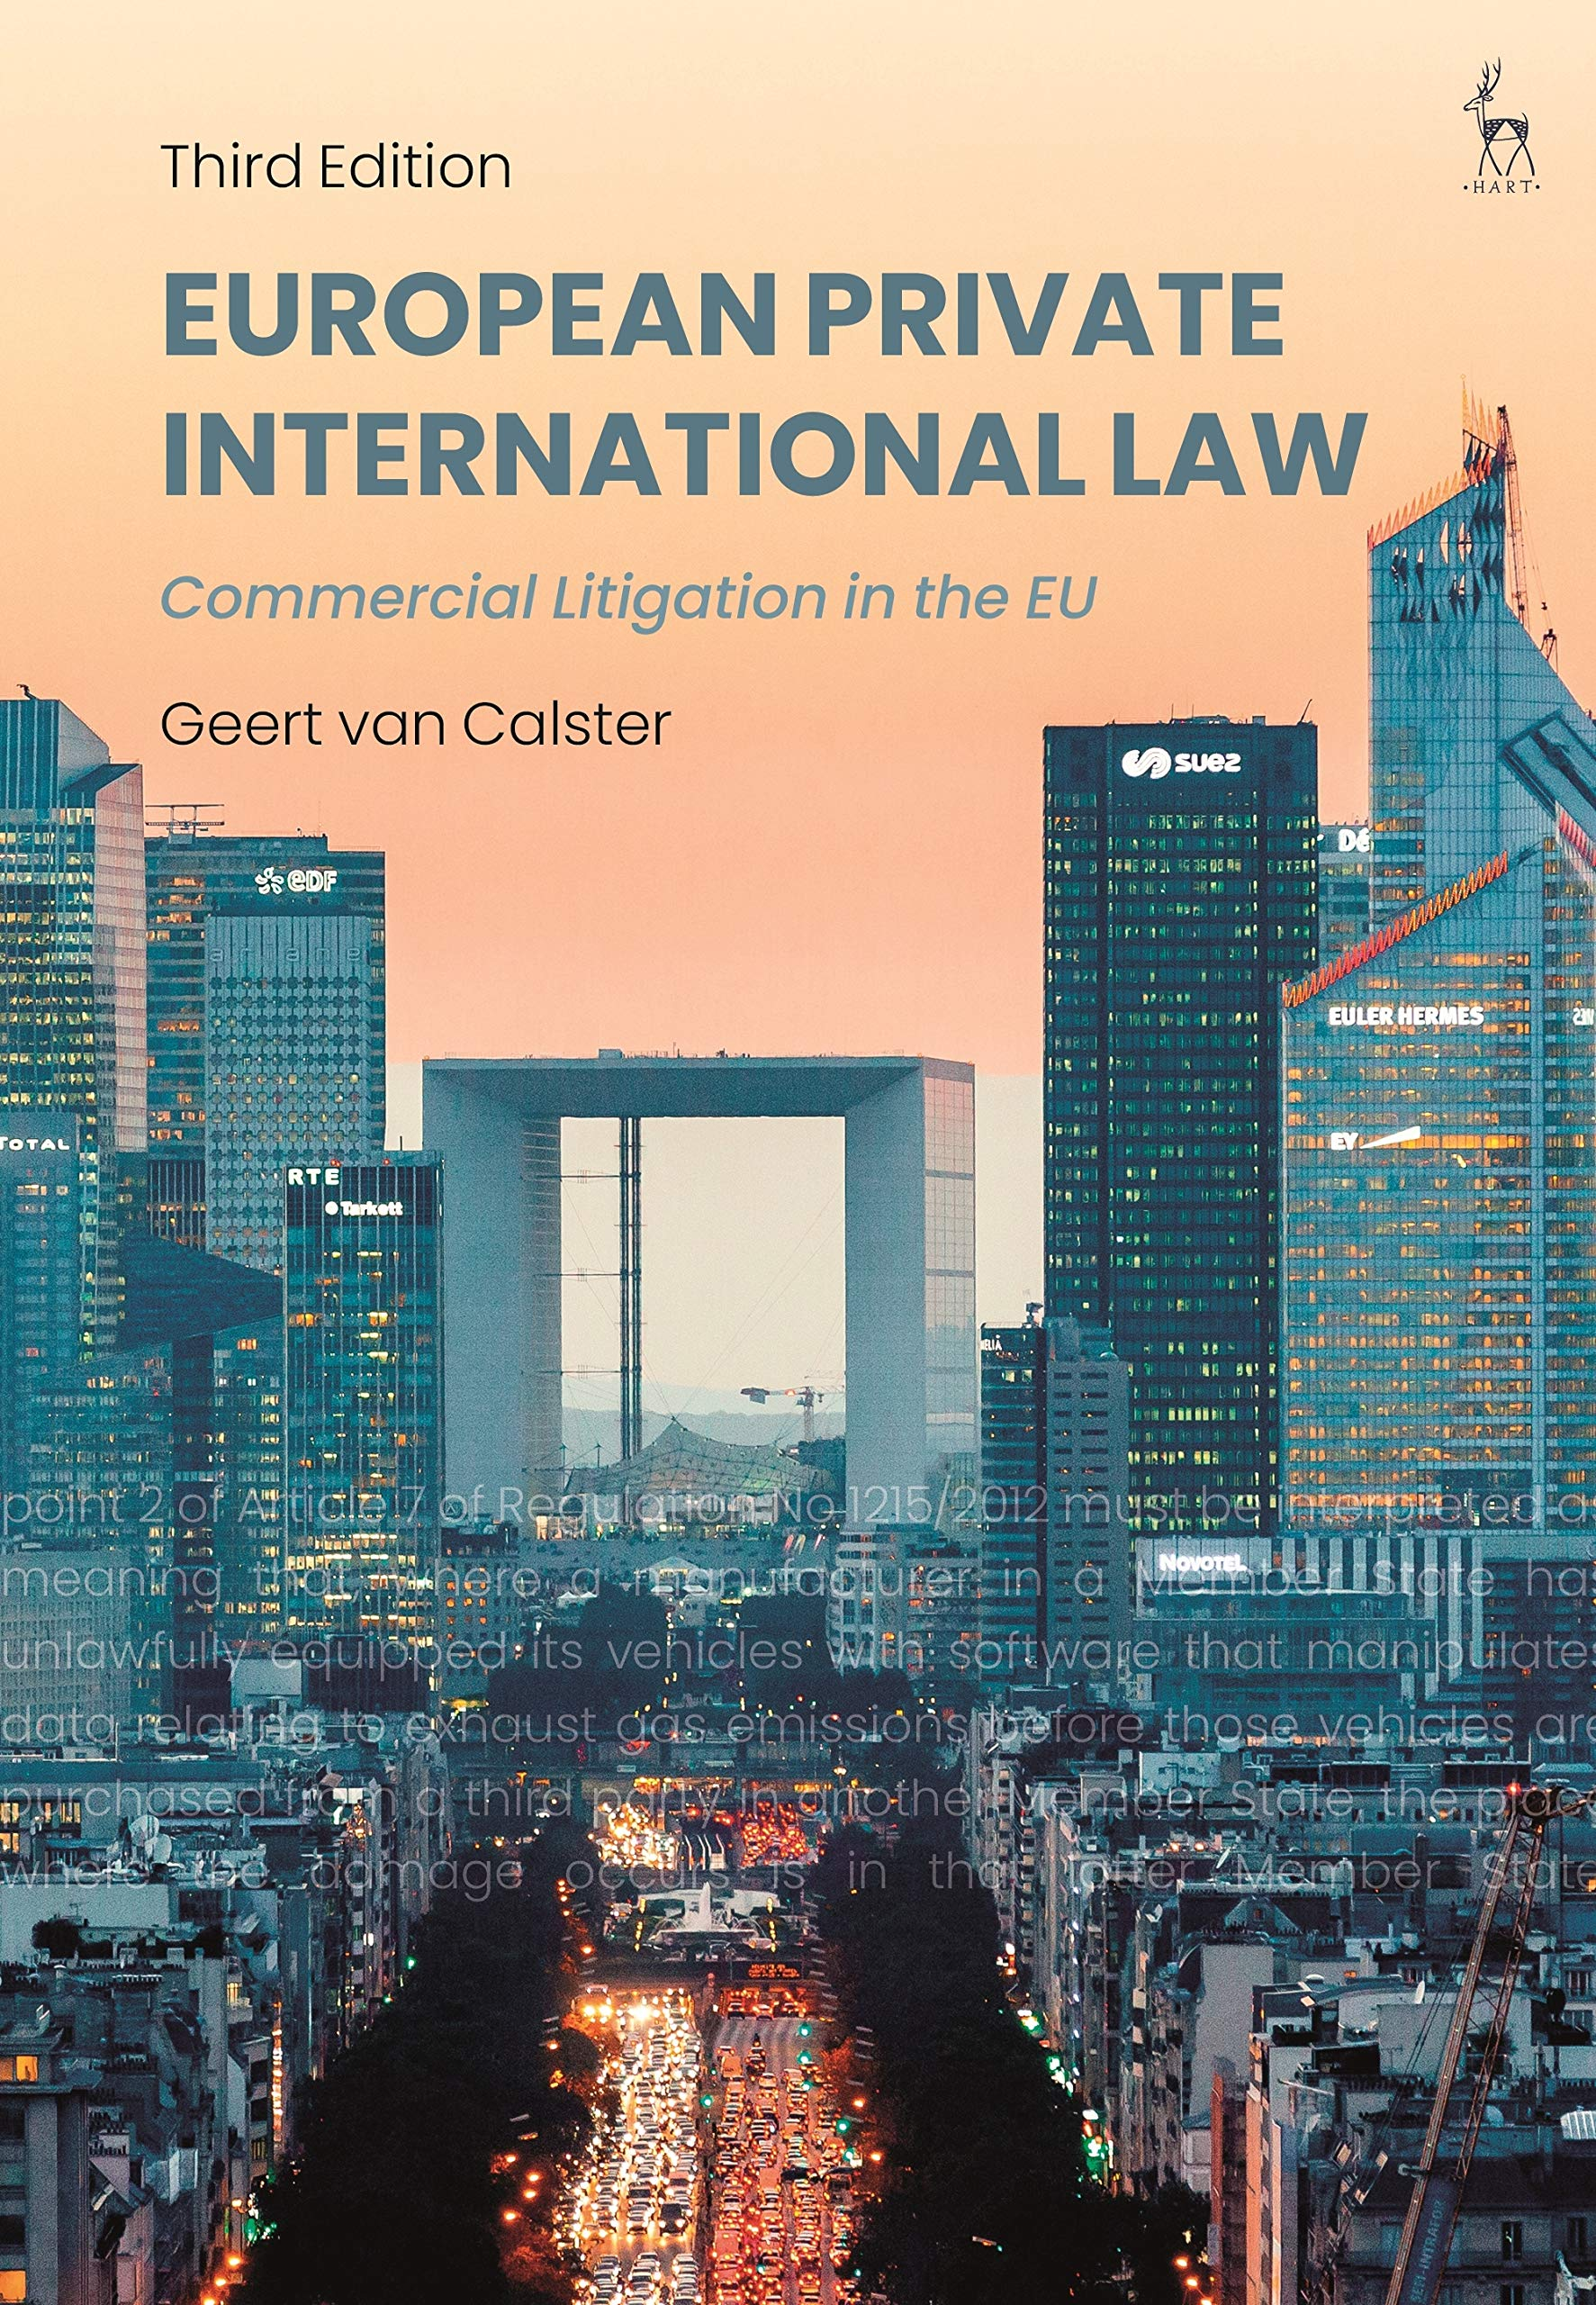 European Private International Law. Commercial Litigation in the EU